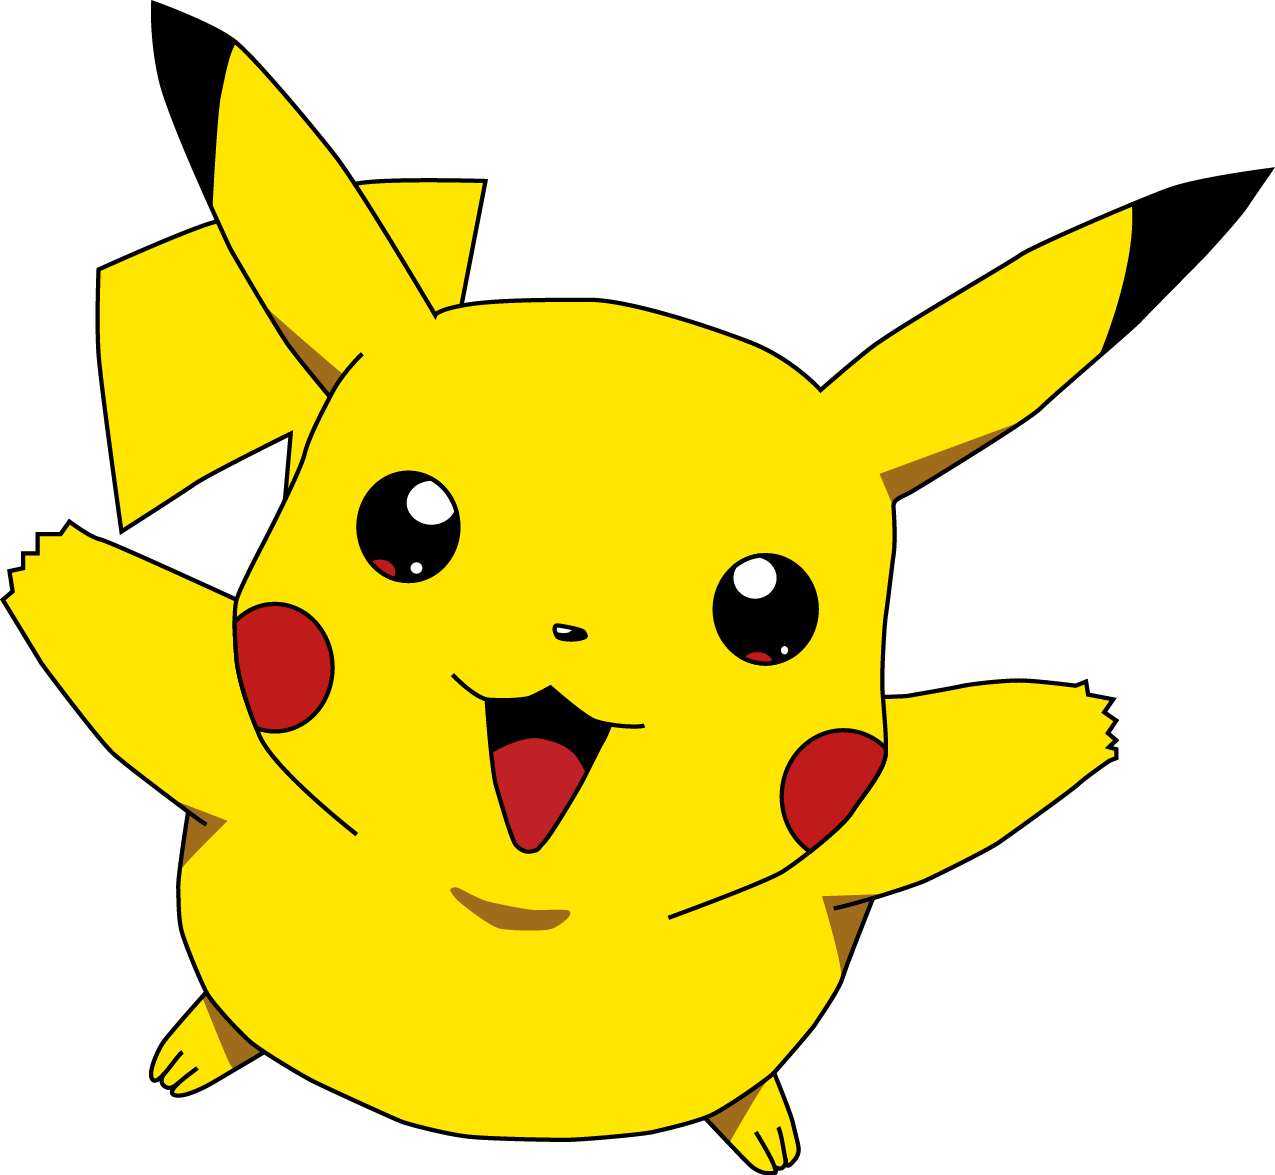 Pokemon pikachu png. Unprecedented game may change